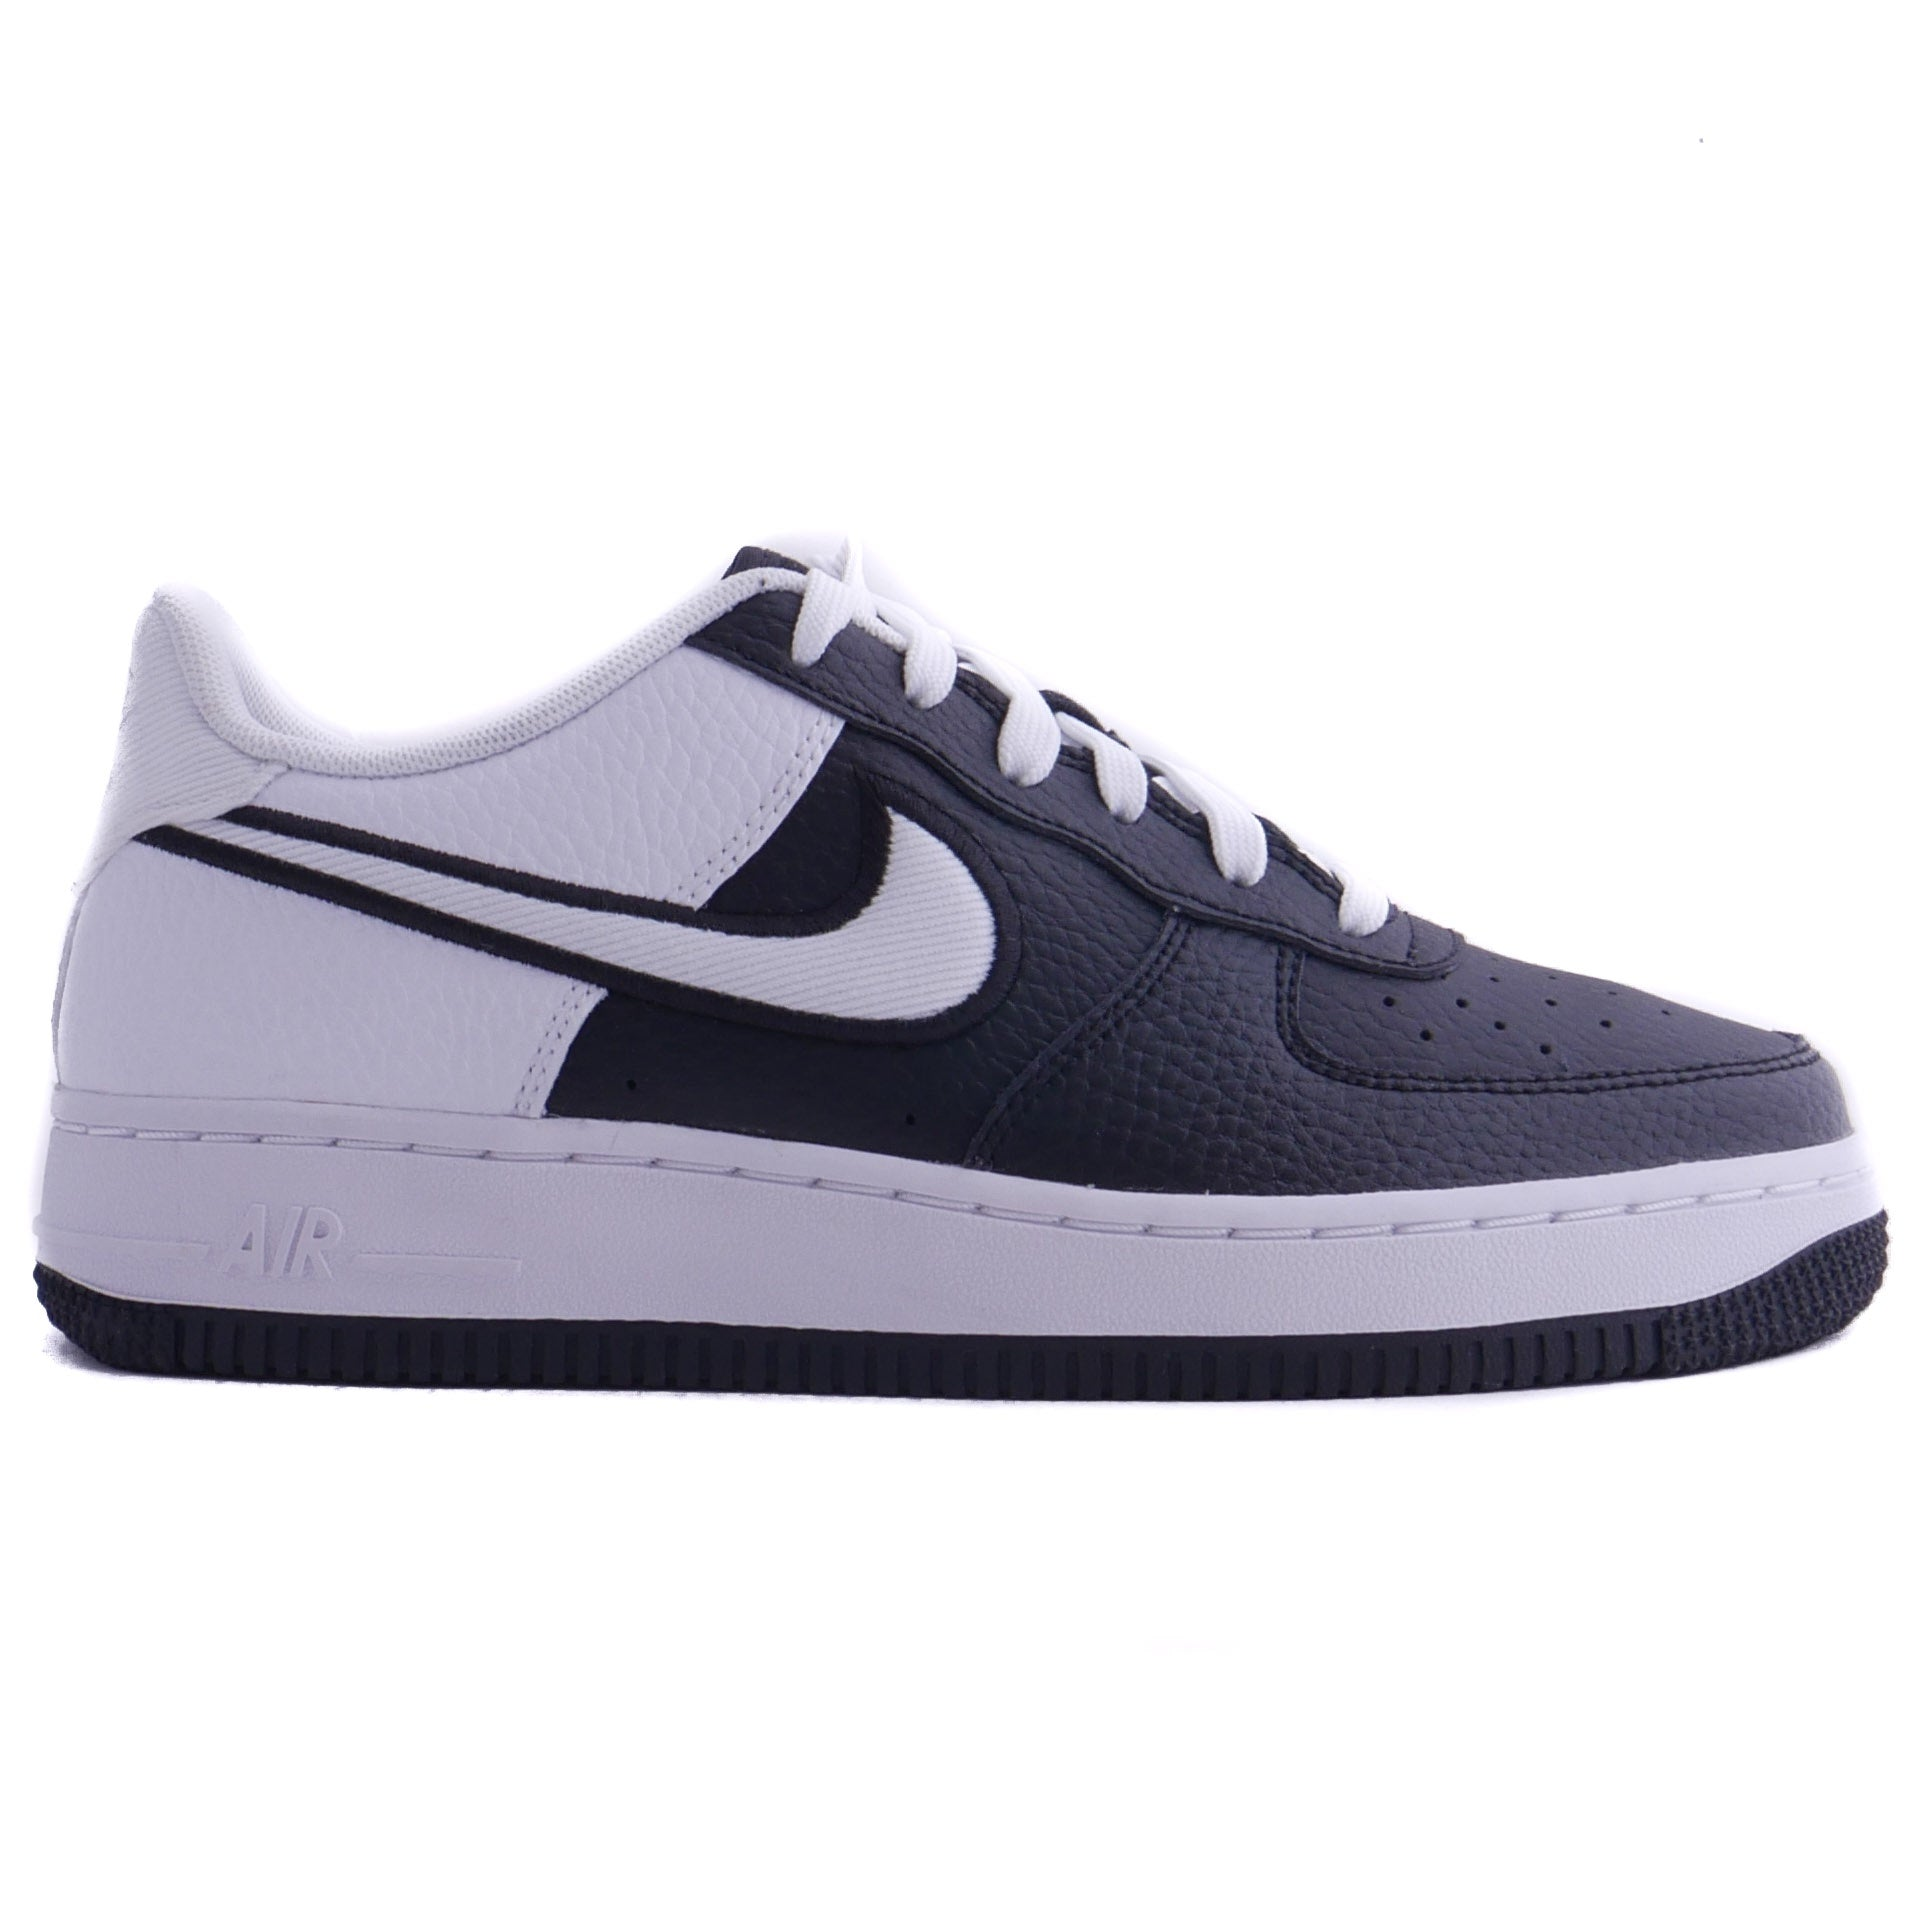 479493ec33b Nike Kids Air Force 1 LV8 White/Black (GS) – Puffer Reds